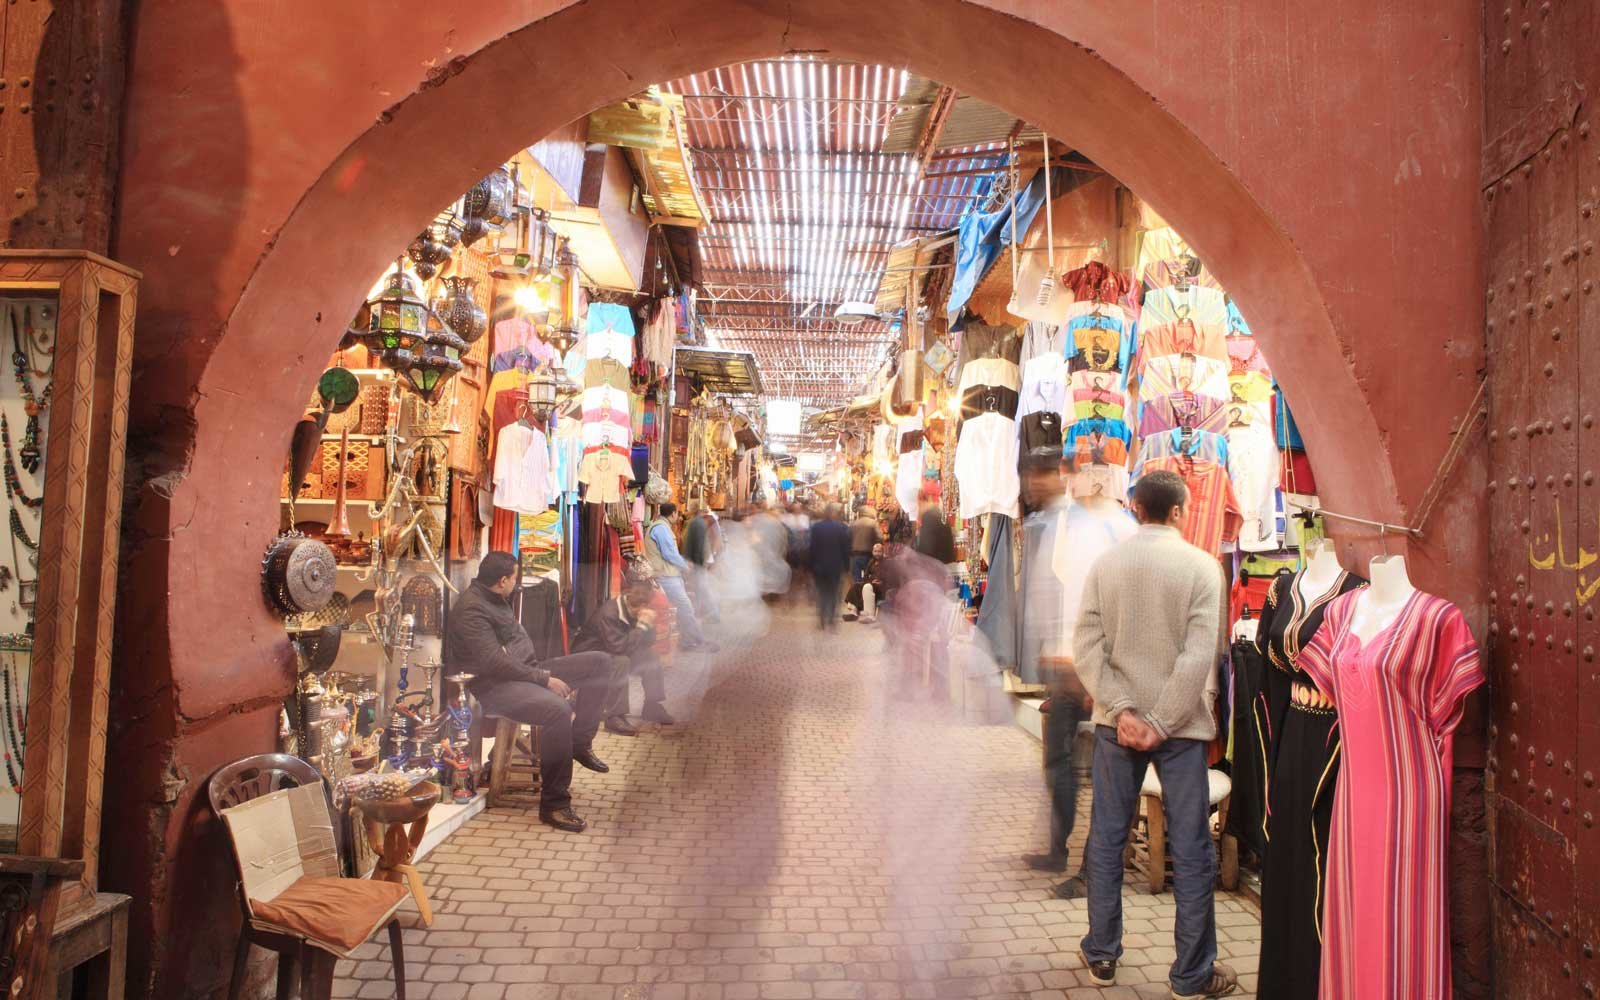 Morocco, Marrakech. Shoppers in medina